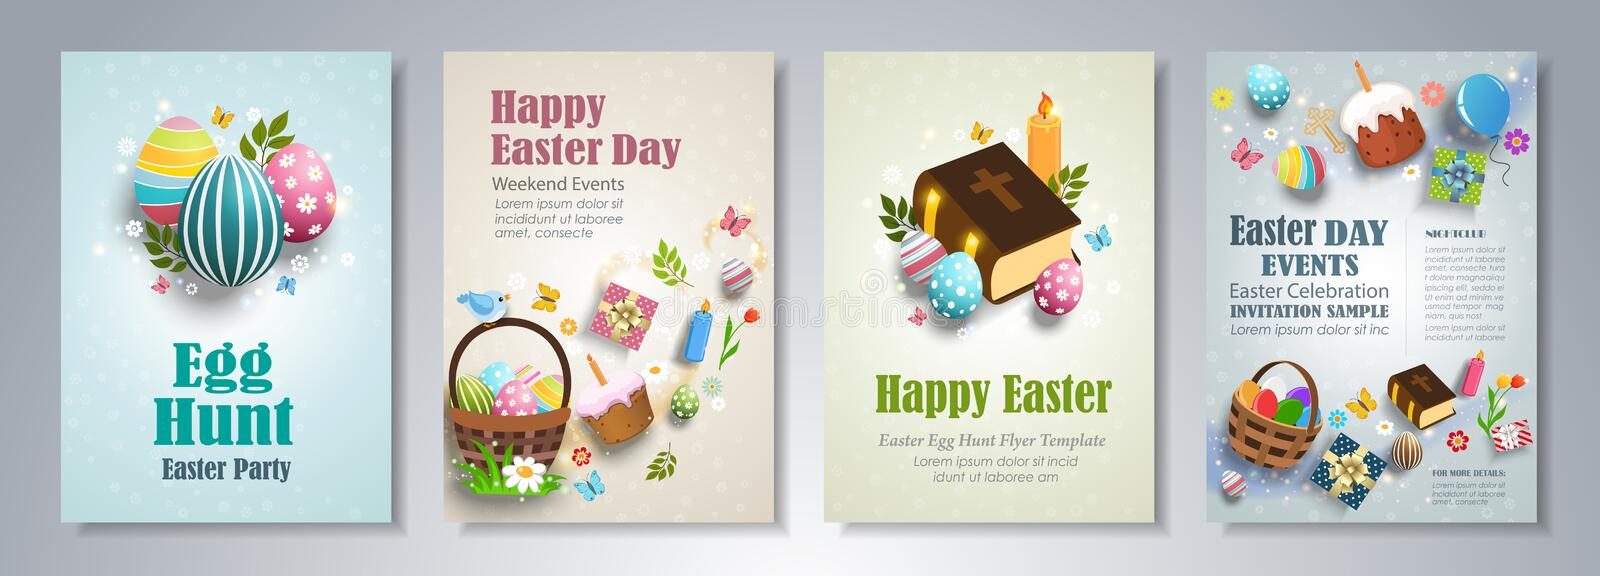 Happy Easter Flyer Template Stock Vector - Illustration of label - easter flyer template